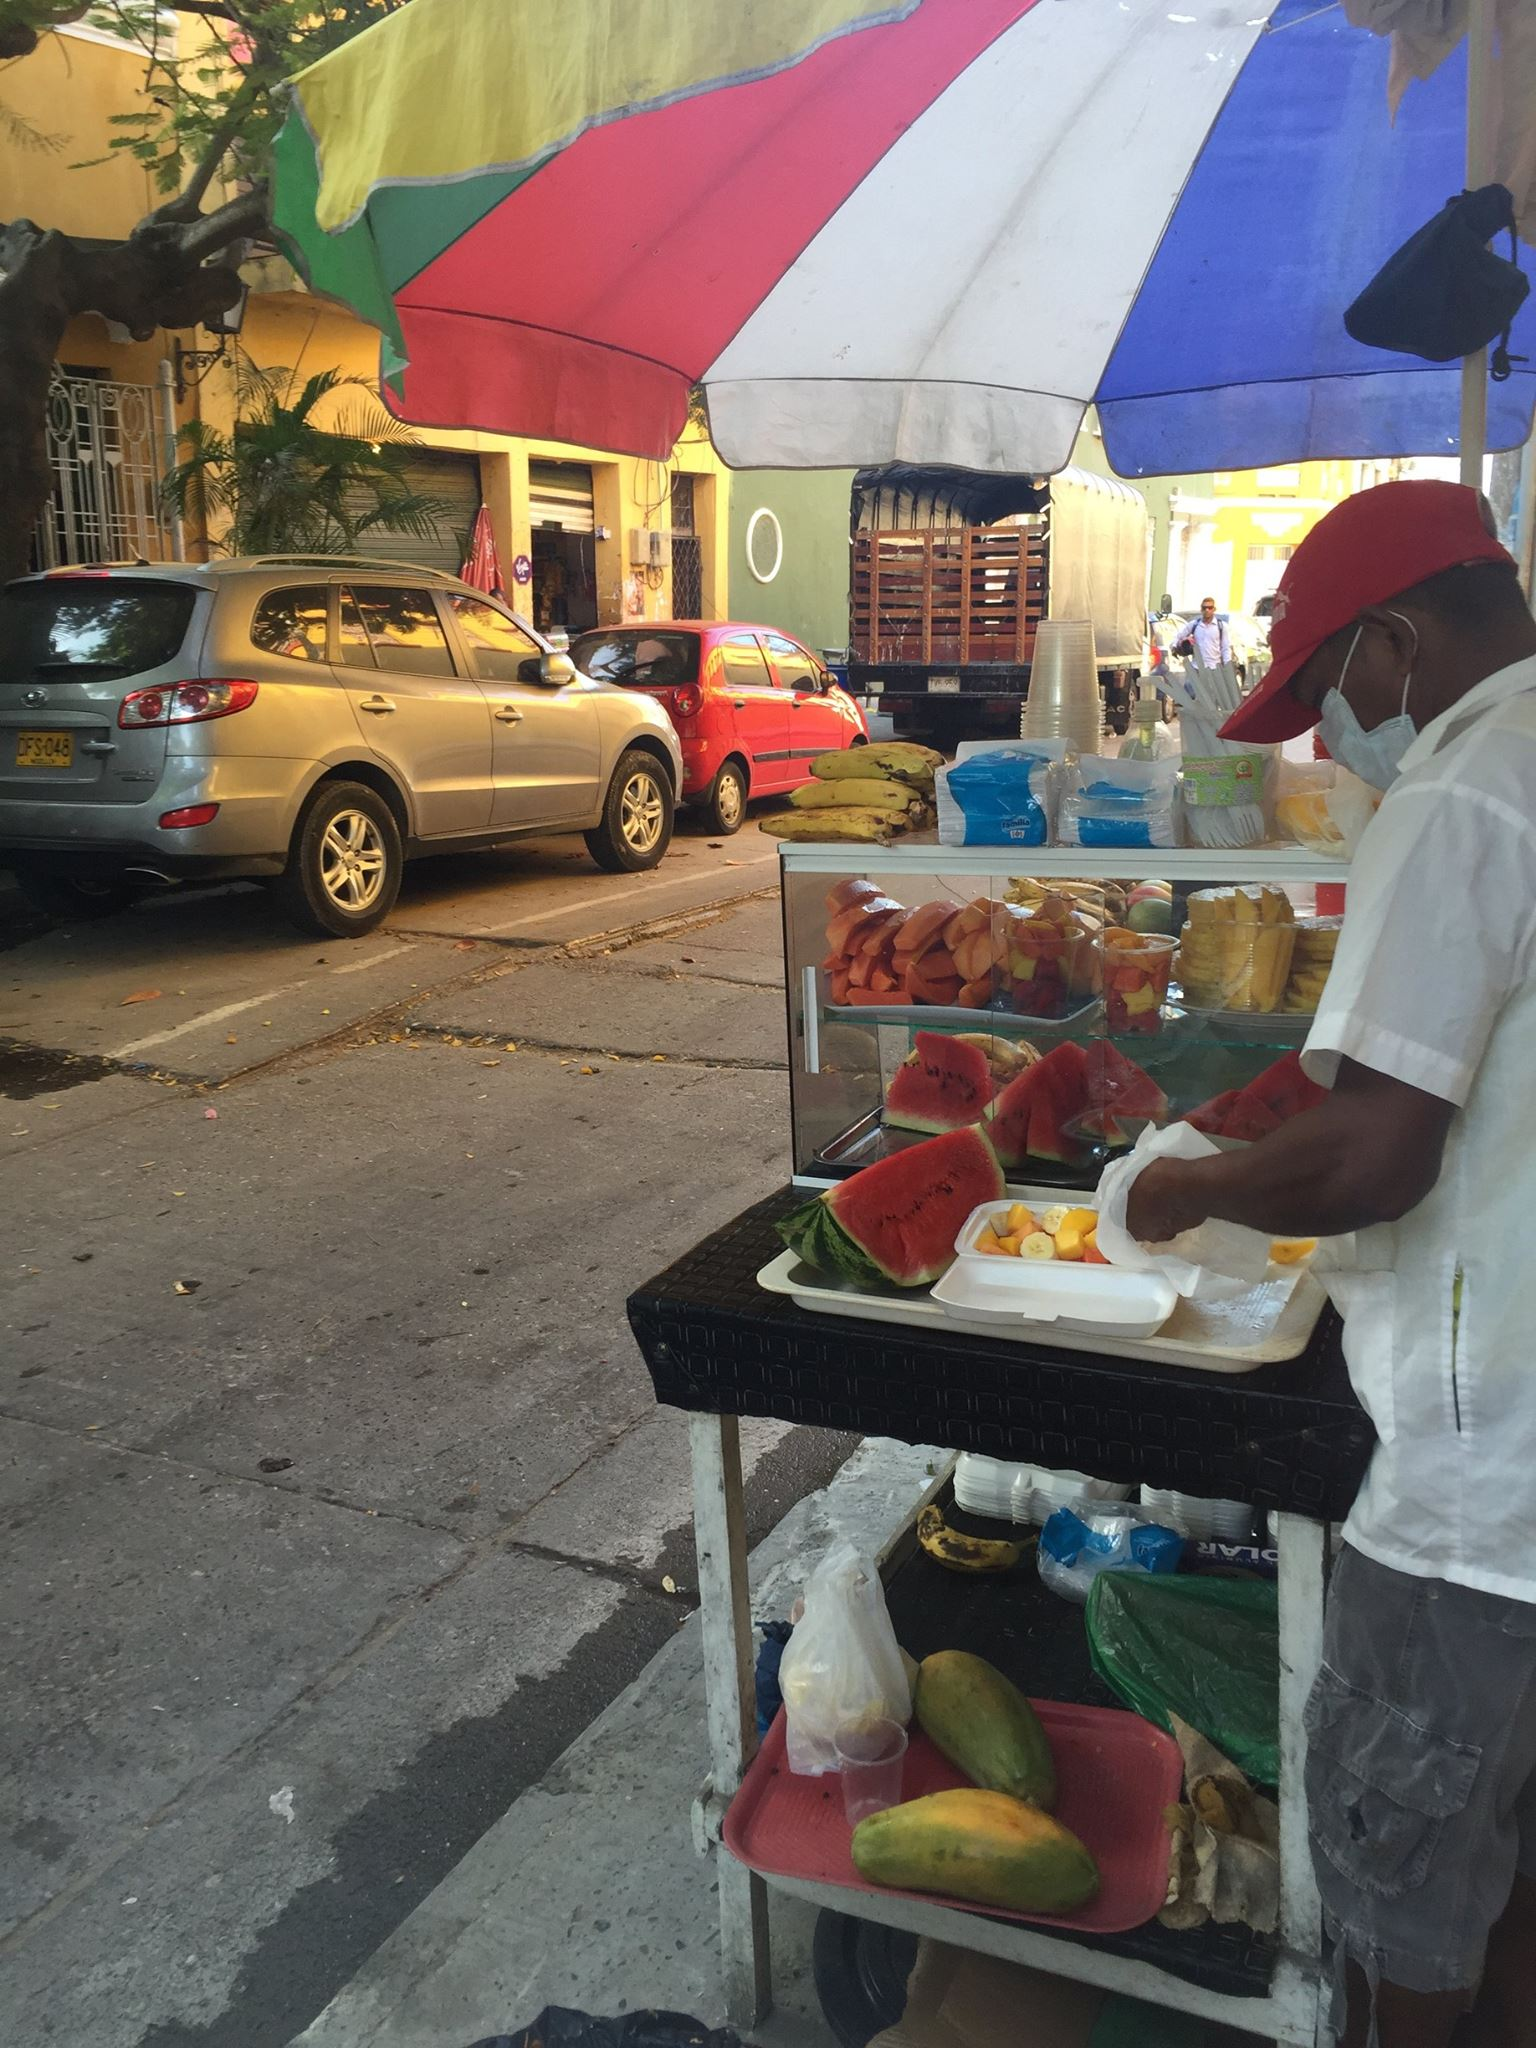 A daily treat - fresh fruit for under $1.